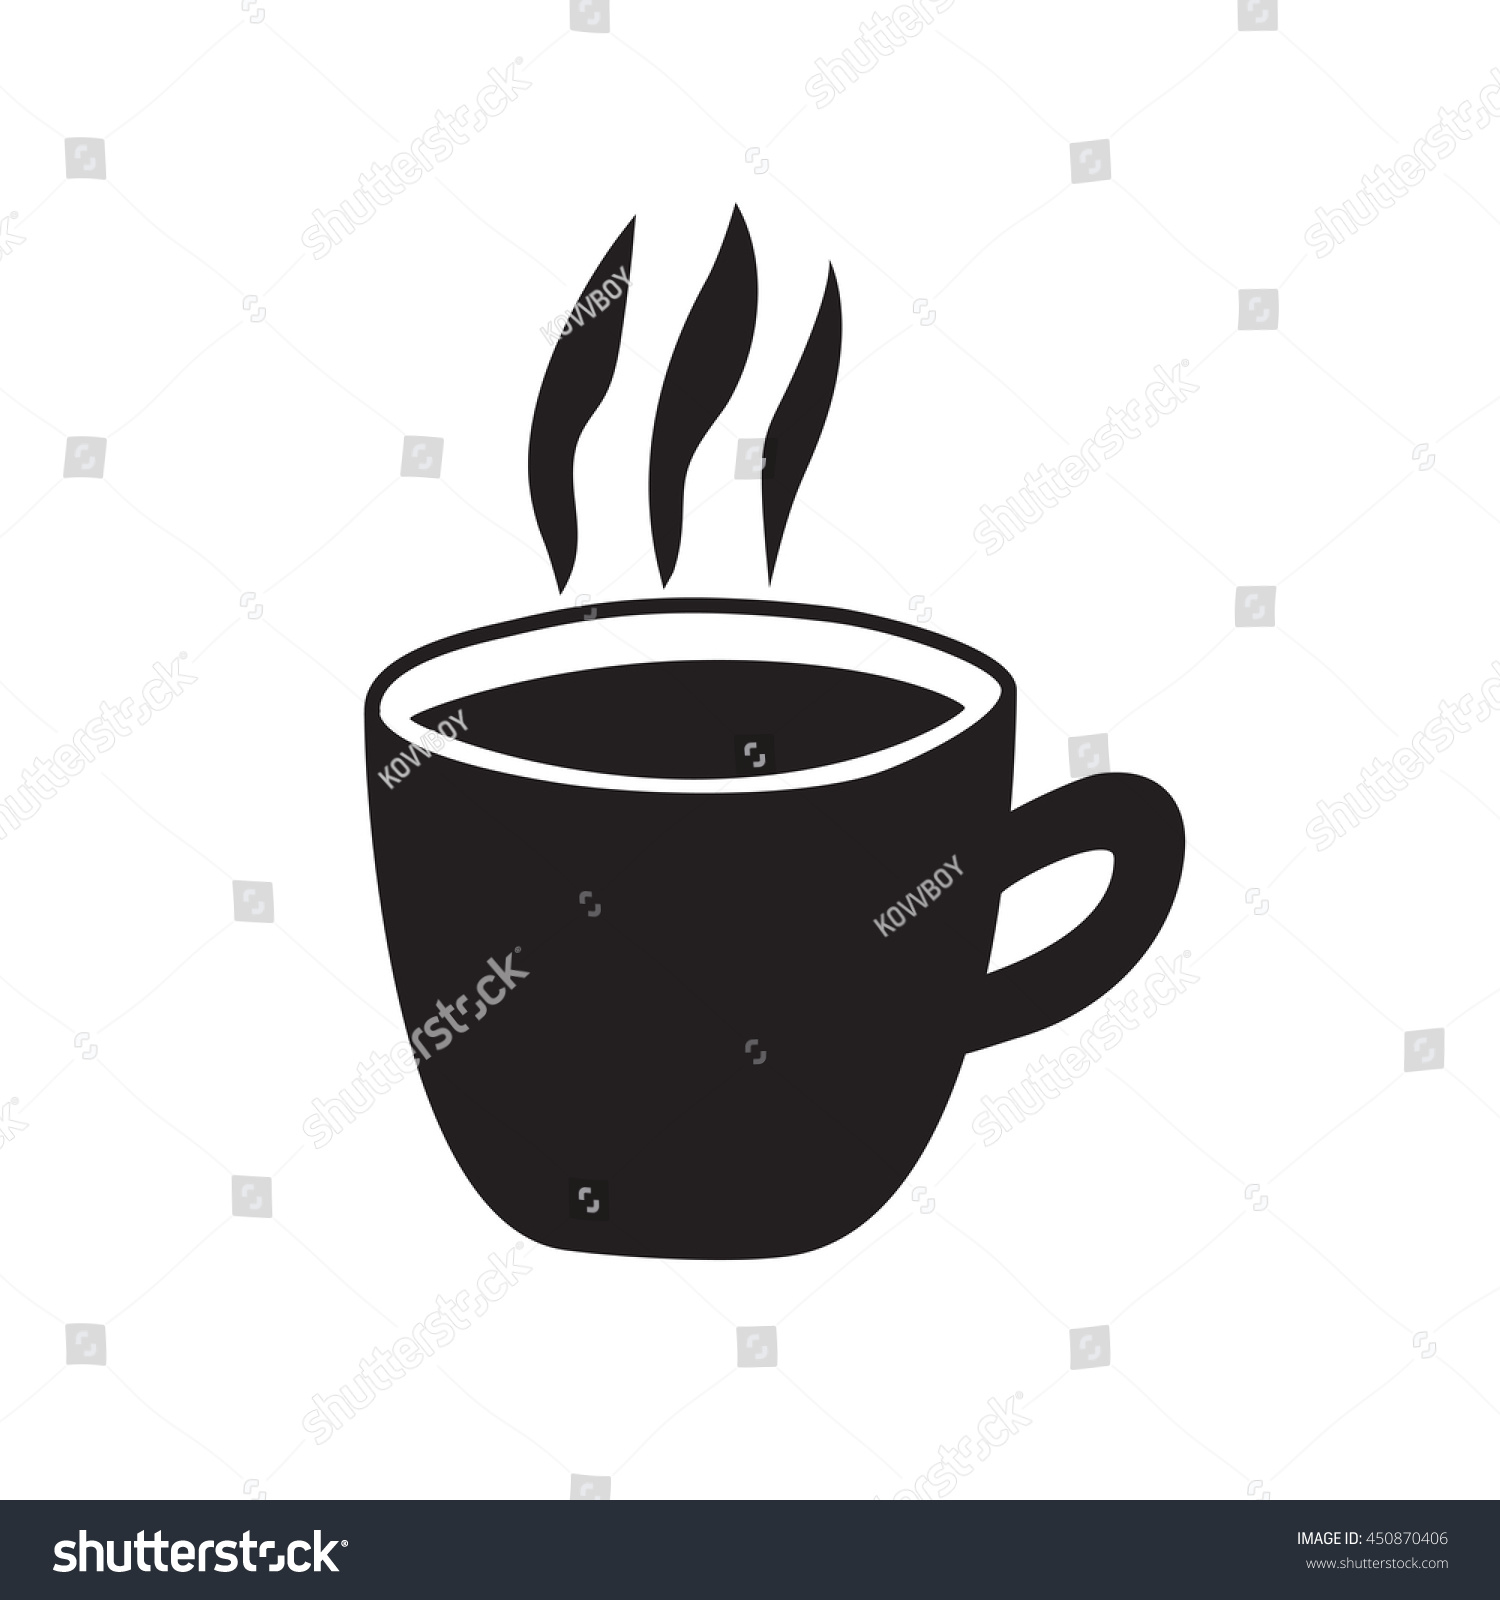 Coffee go vector illustration stock vector 450870406 for Coffee to go